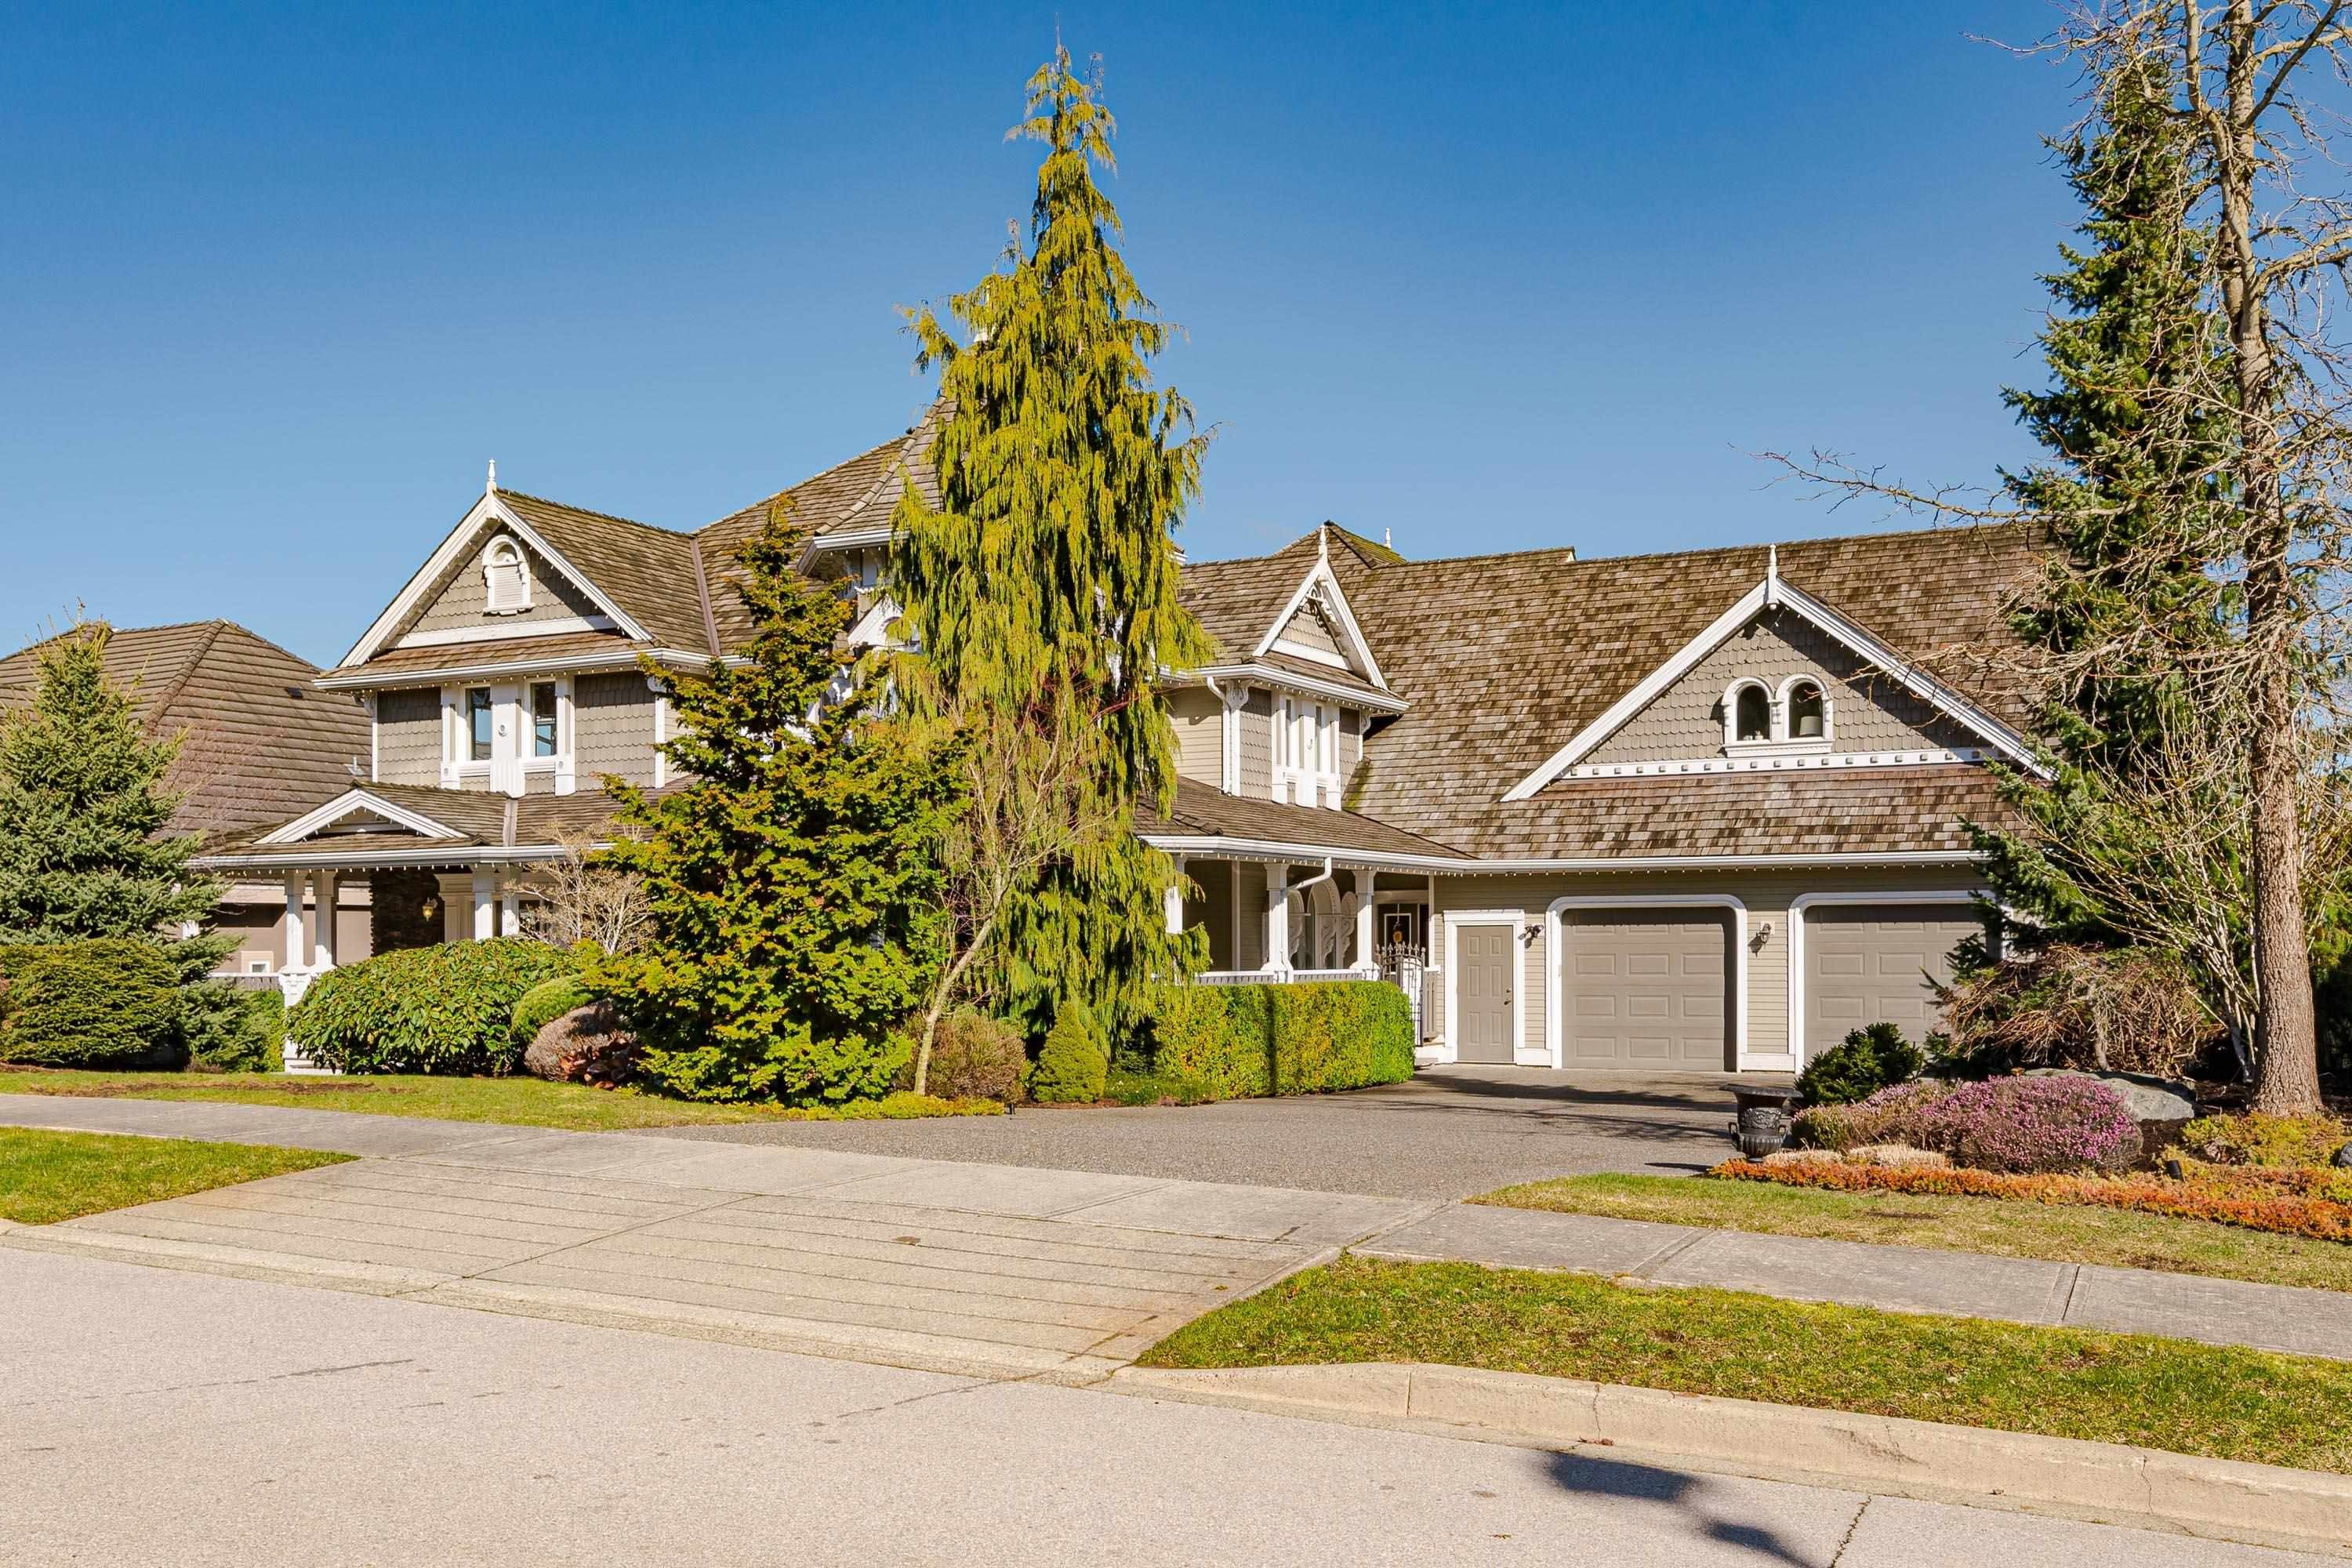 Main Photo: 15861 114 Avenue in Surrey: Fraser Heights House for sale (North Surrey)  : MLS®# R2614847